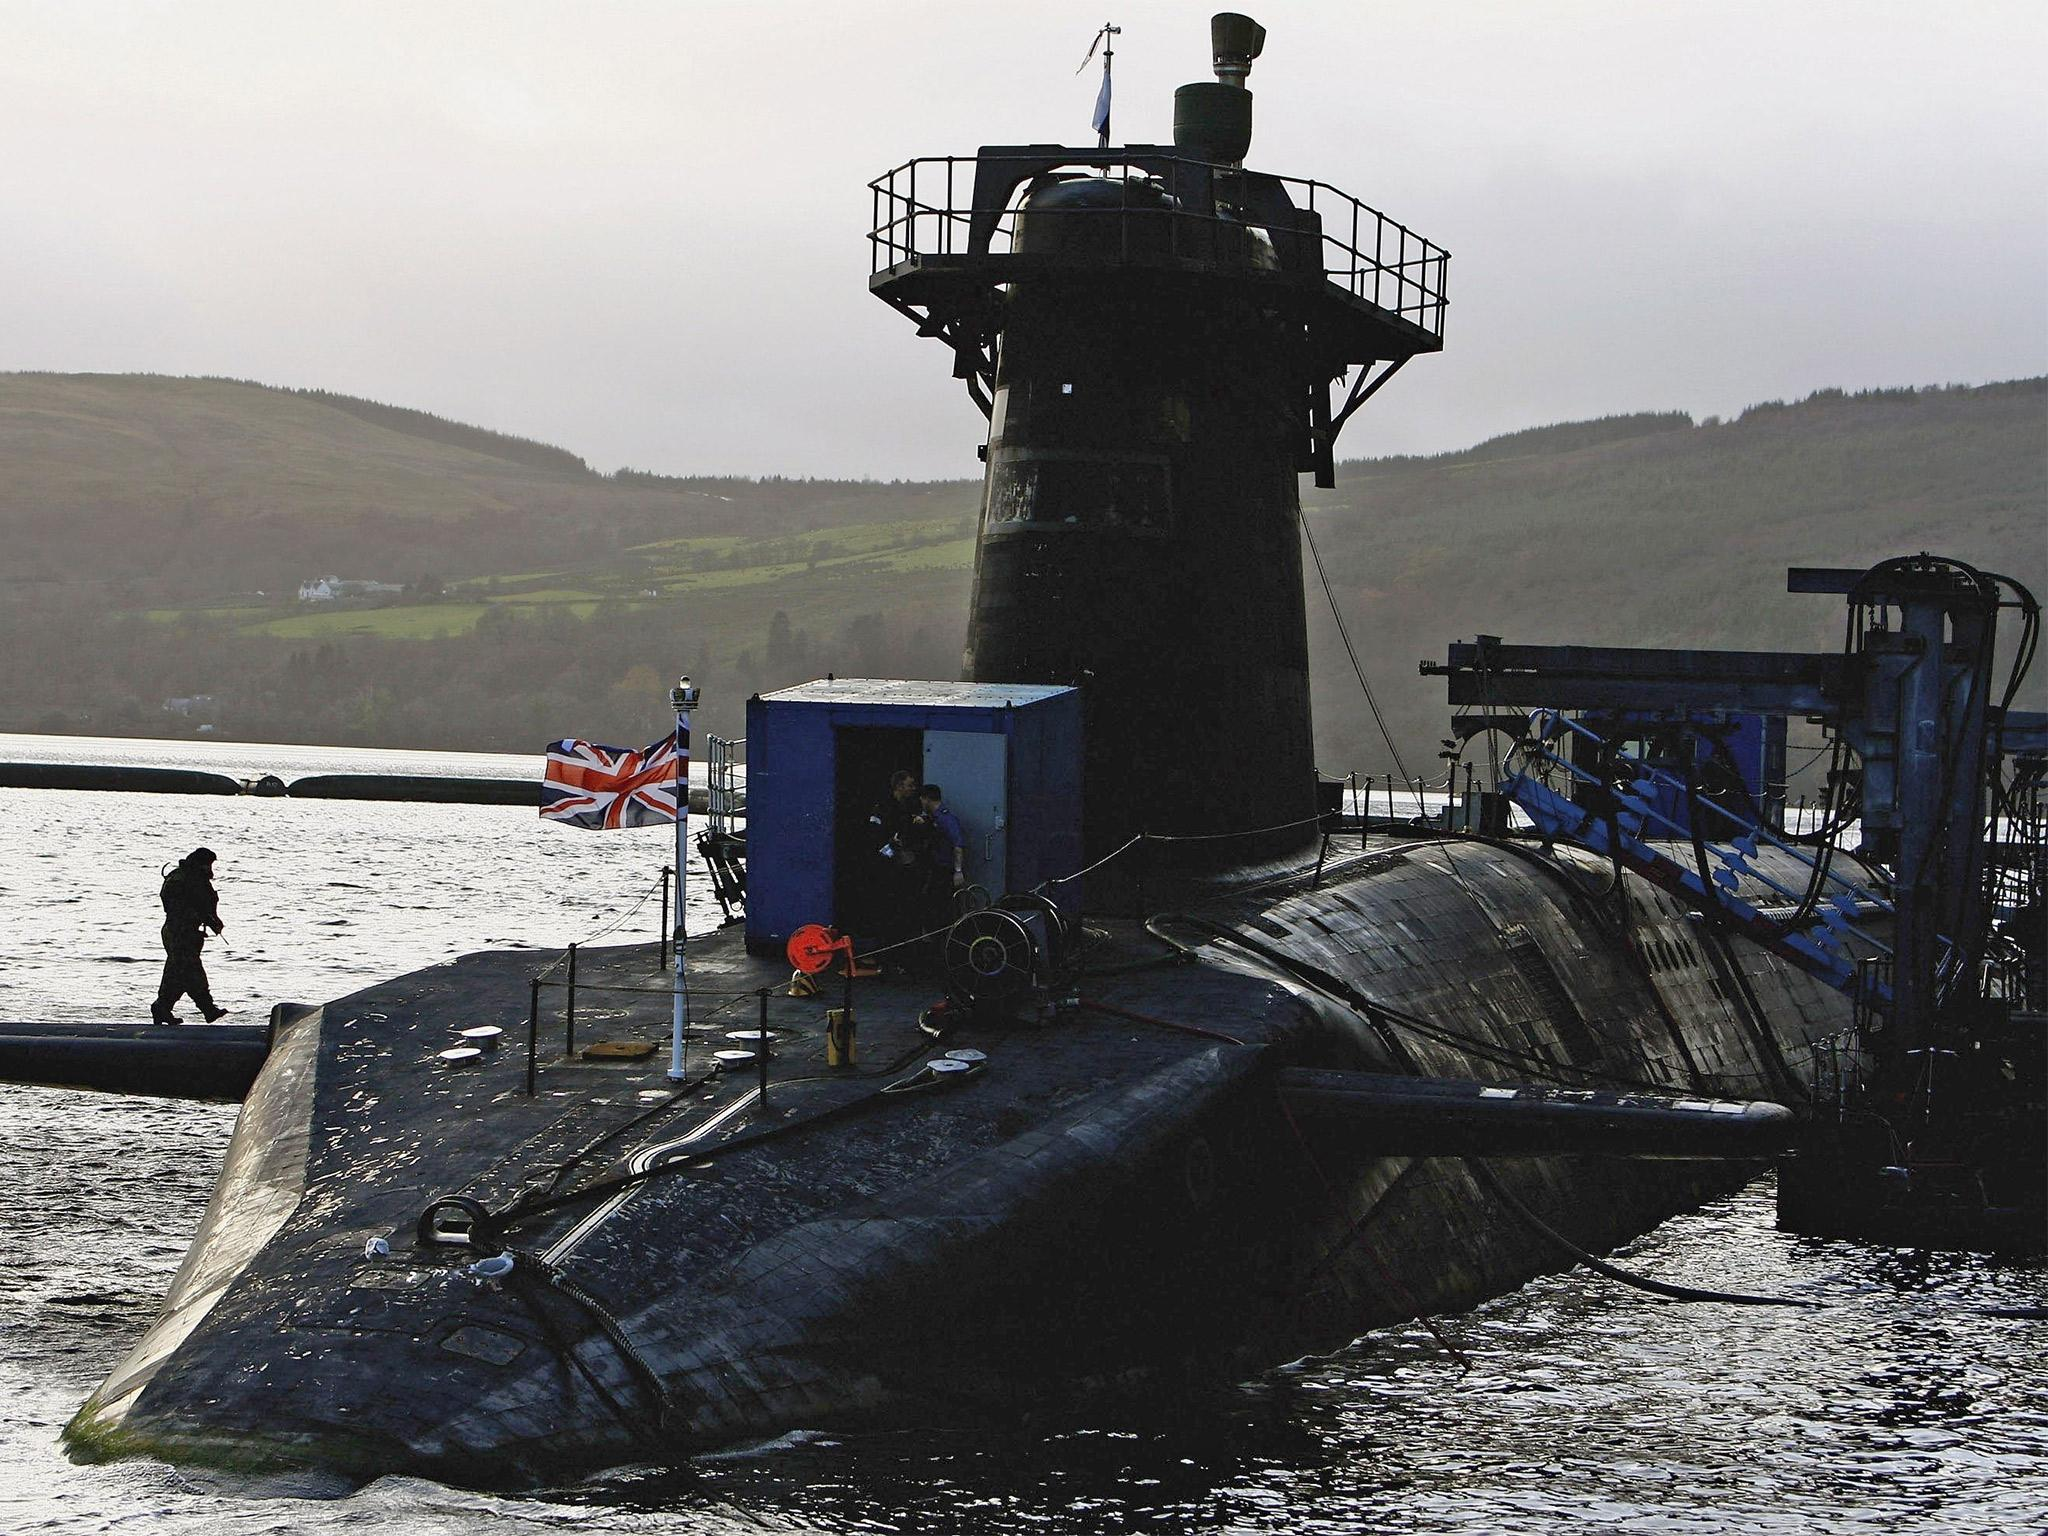 Faslane nuclear submarine base could be flooded as sea levels rise, Scottish Natural Heritage warns